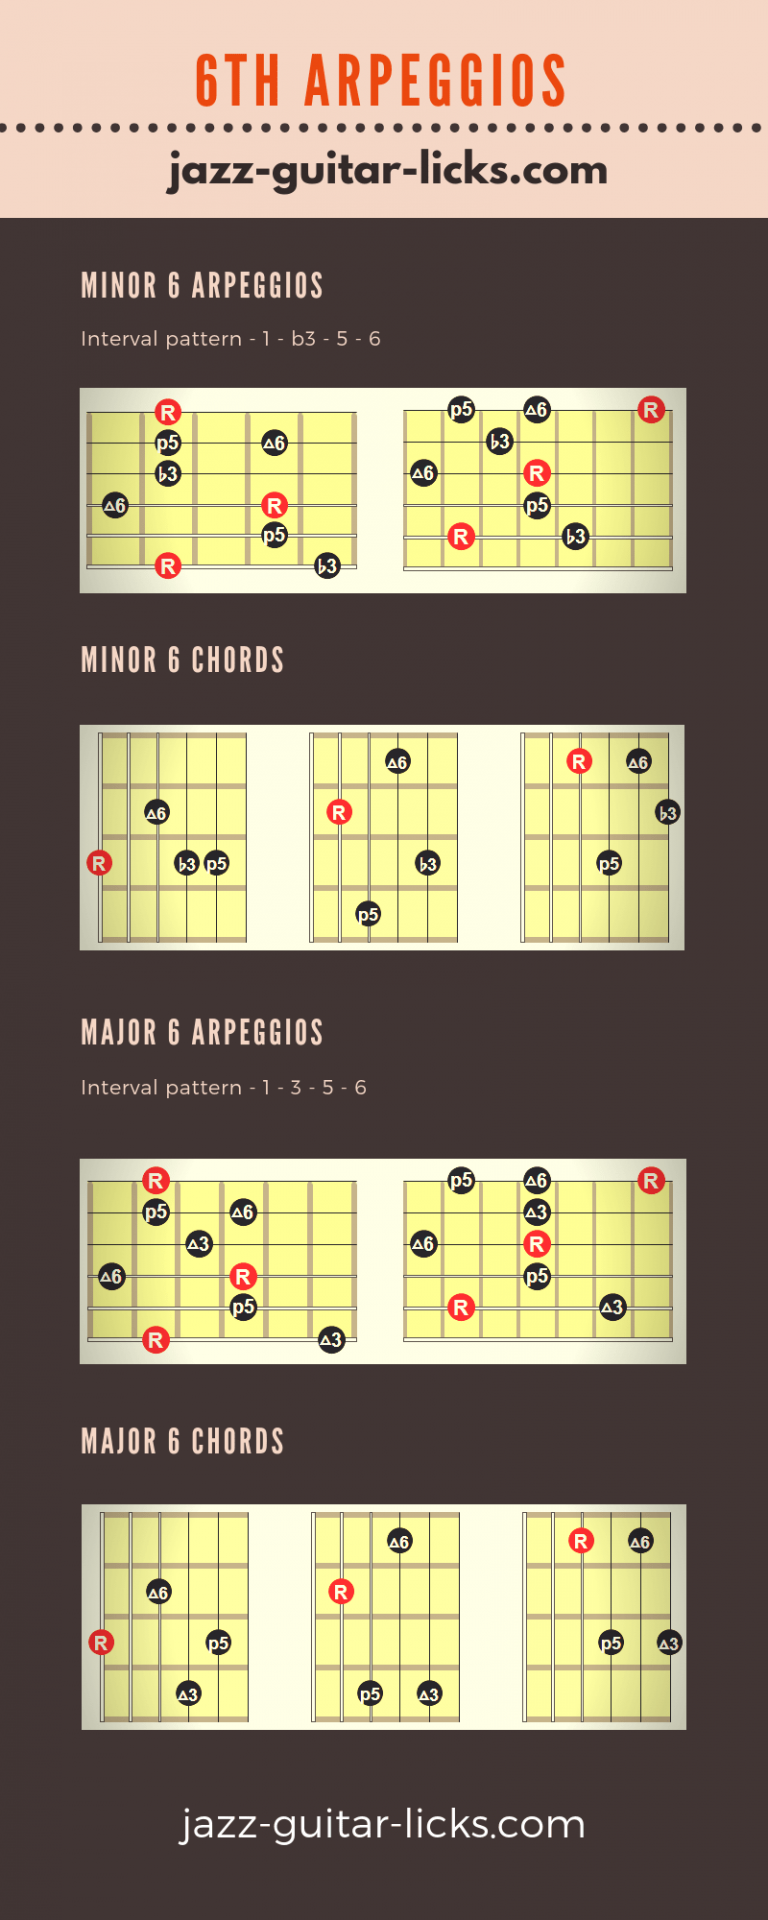 6th arpeggios and chords for guitar